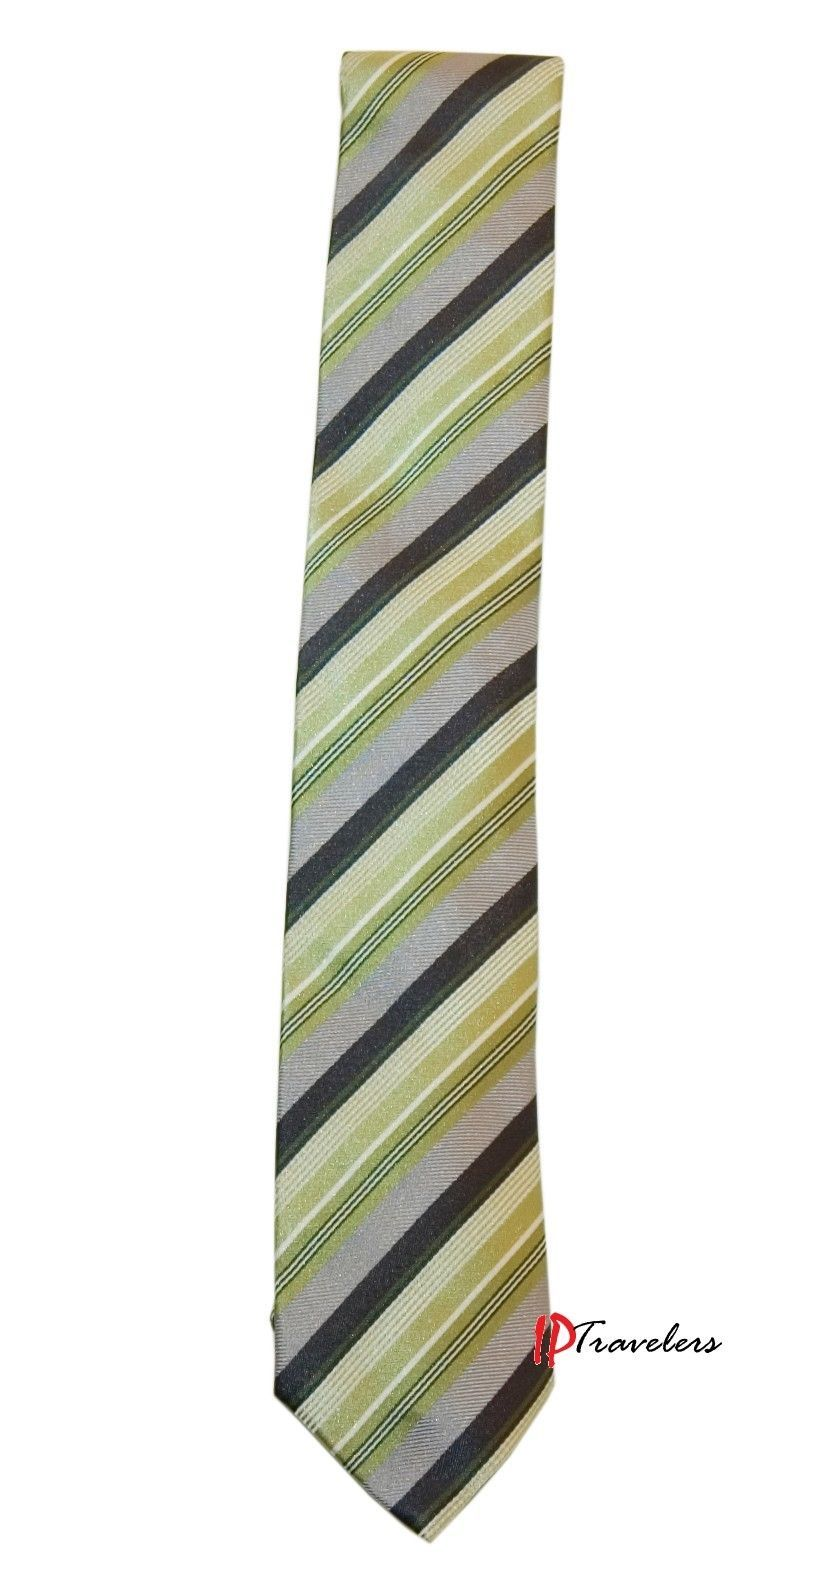 Primary image for Geoffrey Beene Men's Neck Tie Green, Gray, Black and White Stripes 100% Silk $55